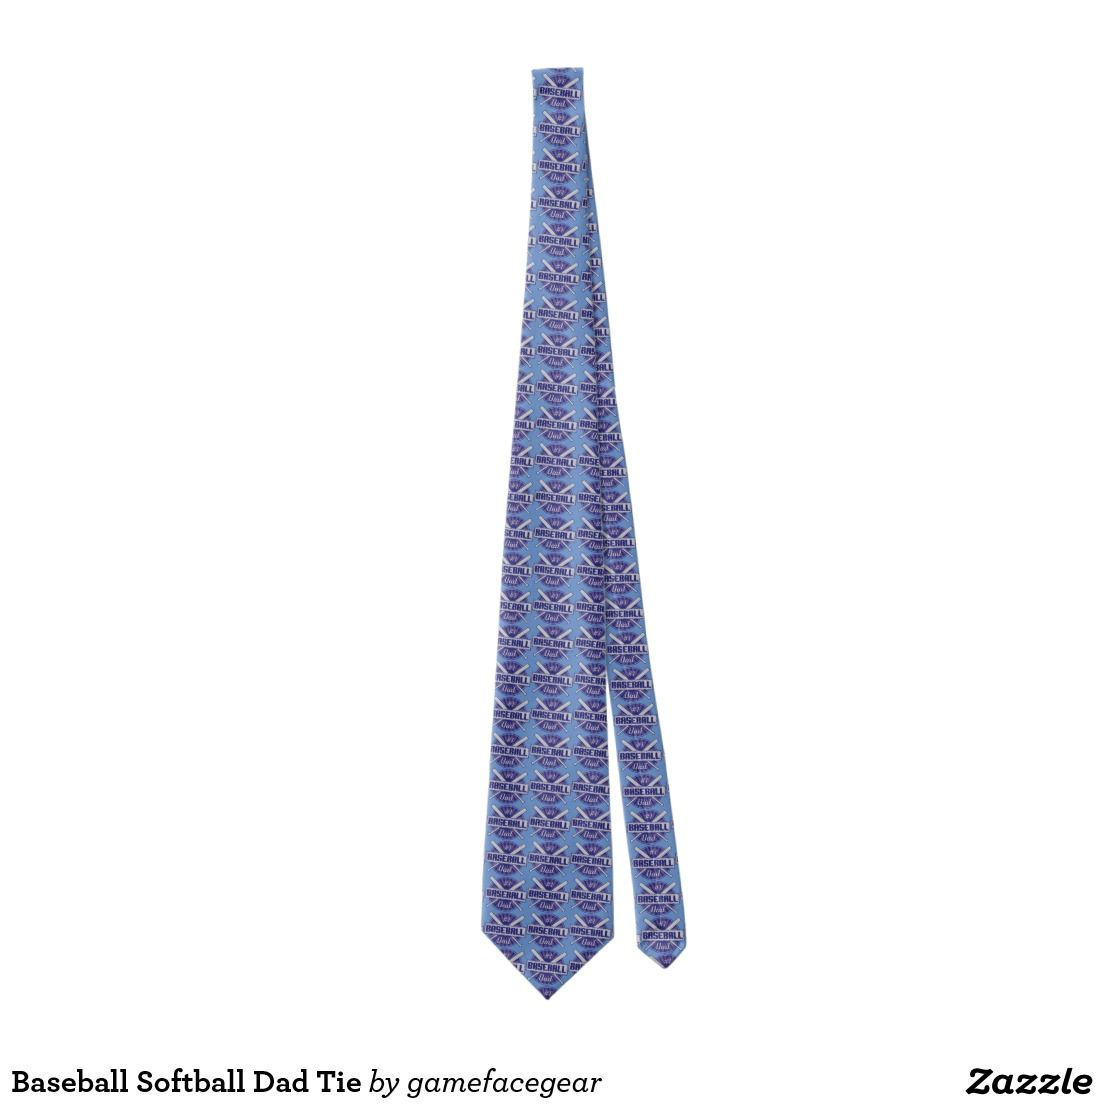 #Baseball Softball Dad Tie. Custom neck ties, printed on both sides.  #Ties #Zazzle